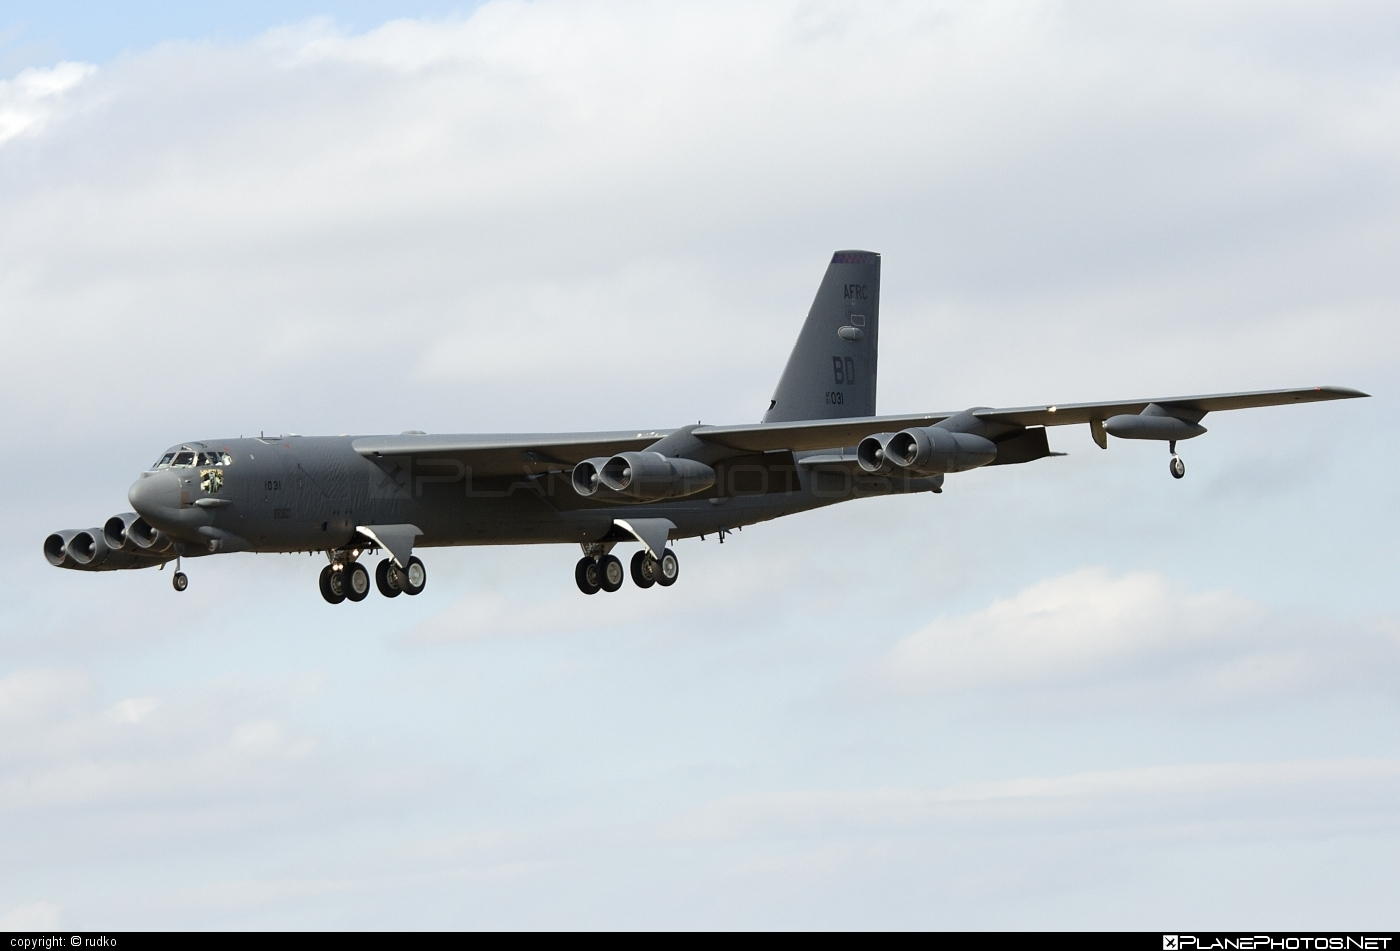 Boeing B-52H Stratofortress - 61-0031 operated by US Air Force (USAF) #b52 #boeing #natodays #natodays2012 #stratofortress #usaf #usairforce